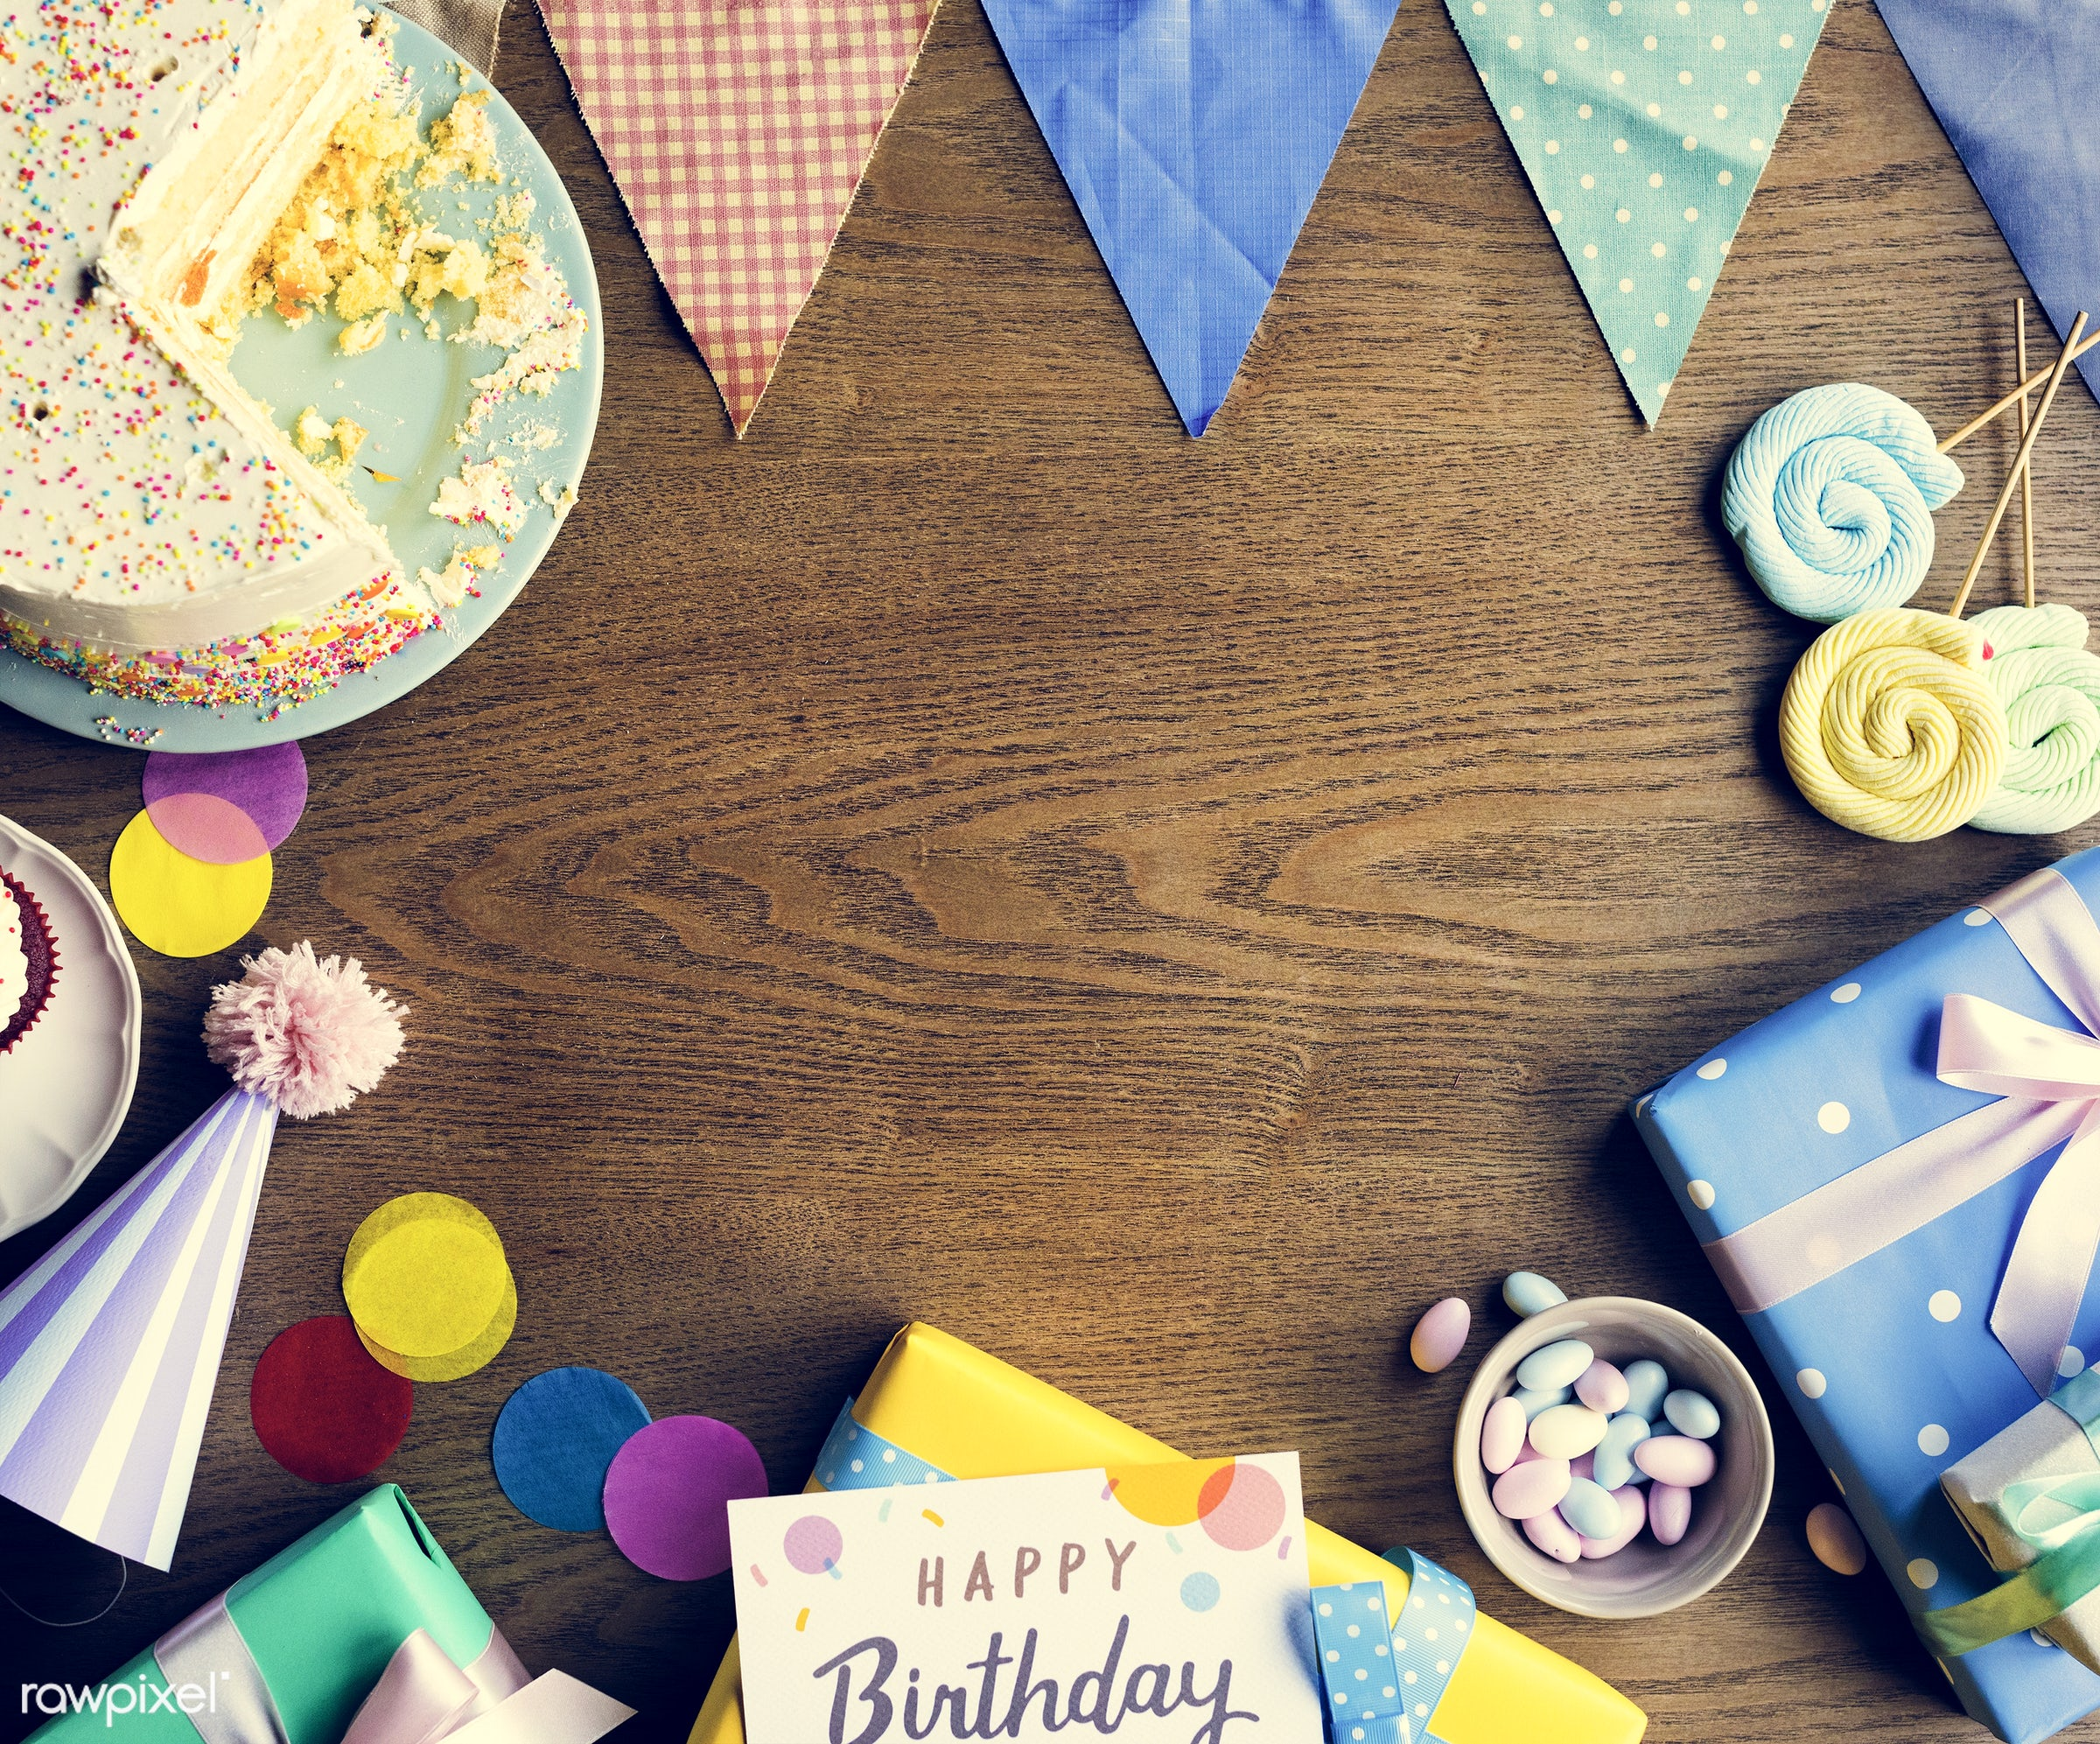 nobody, birthday, gift, copy space, relax, occasion, show, party, hat, bakery, happy, gather, gathering, wooden background,...